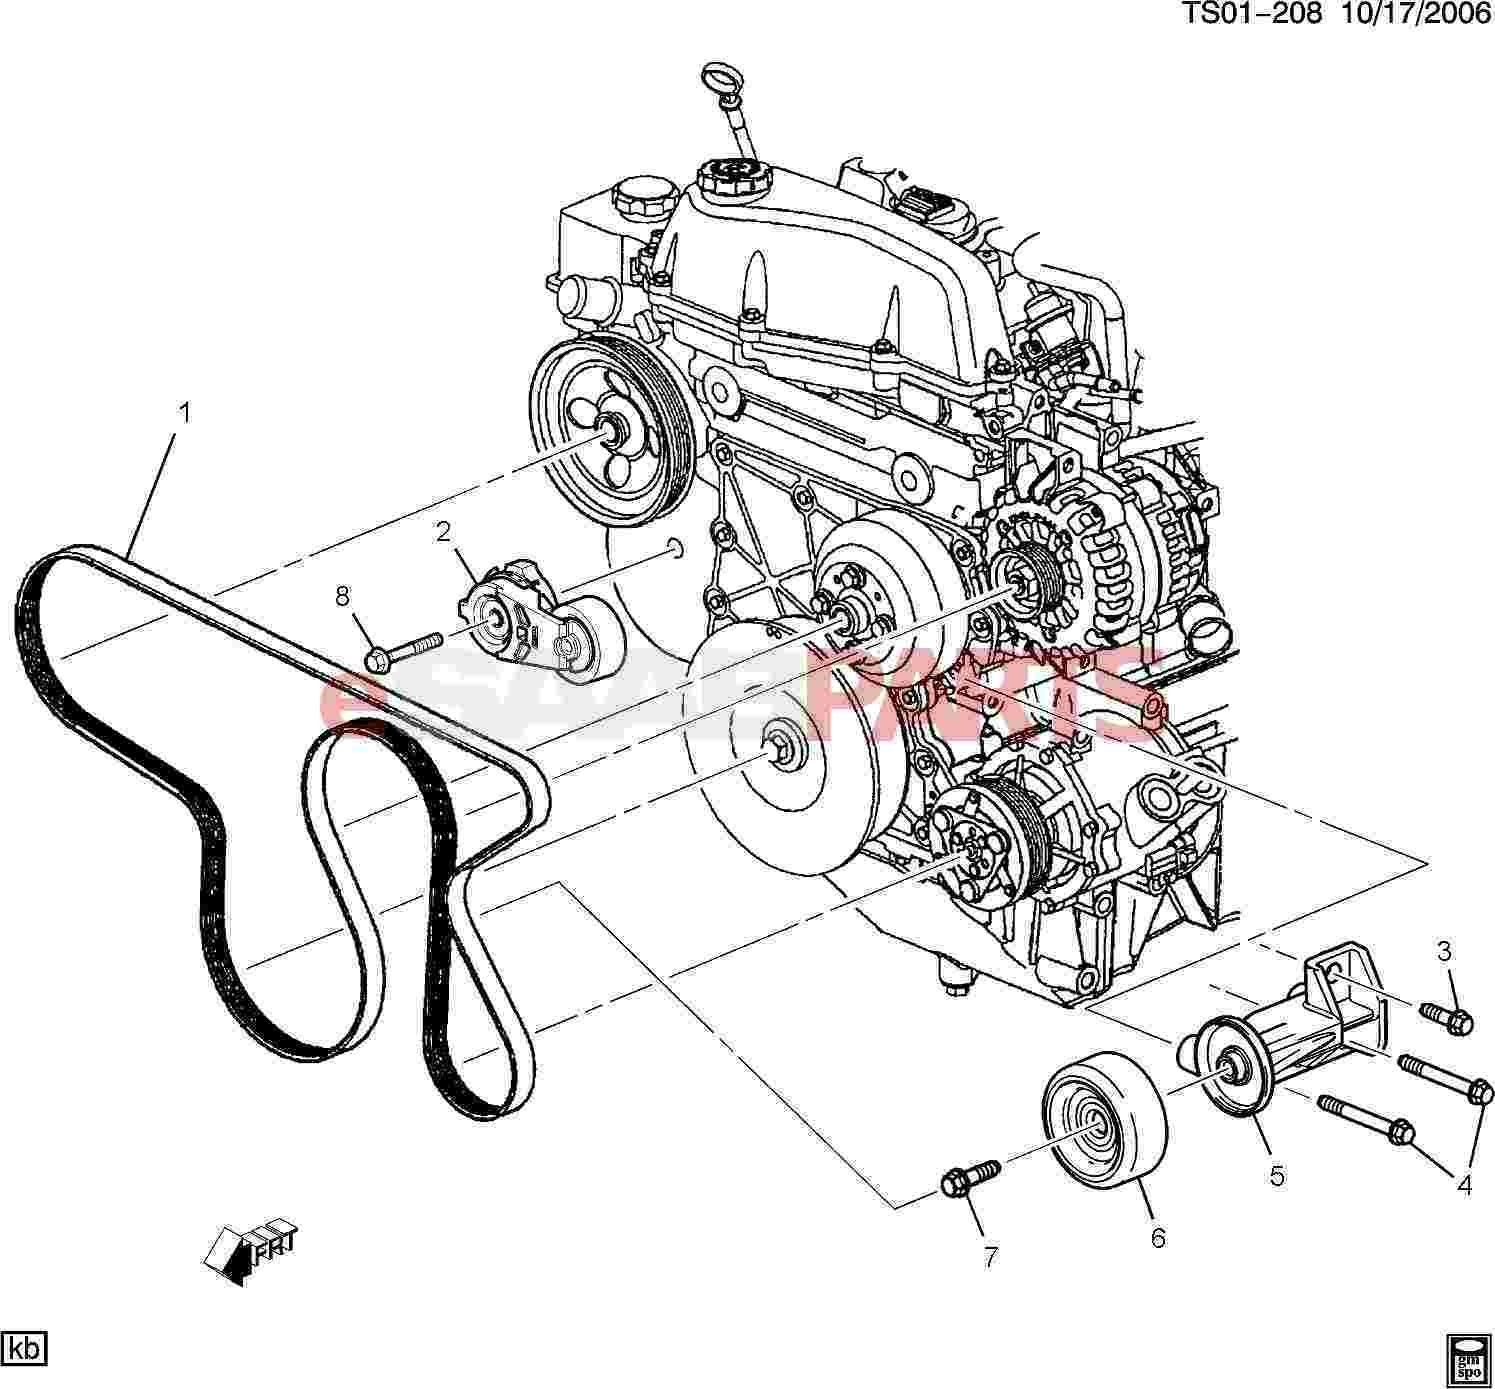 2003 ford expedition 5.4l engine diagram